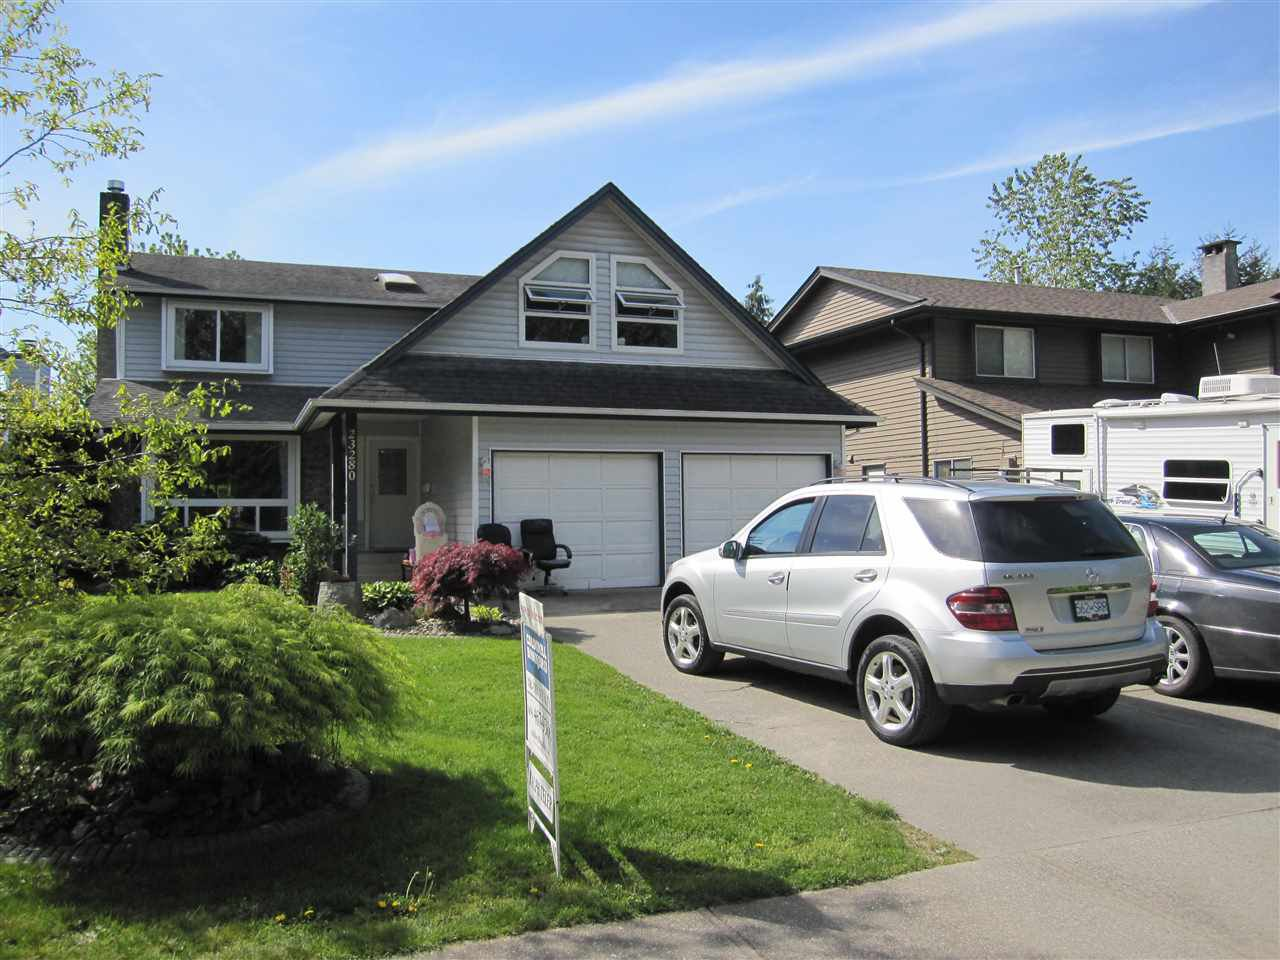 Main Photo: 23280 118 Avenue in Maple Ridge: Cottonwood MR House for sale : MLS®# R2058879